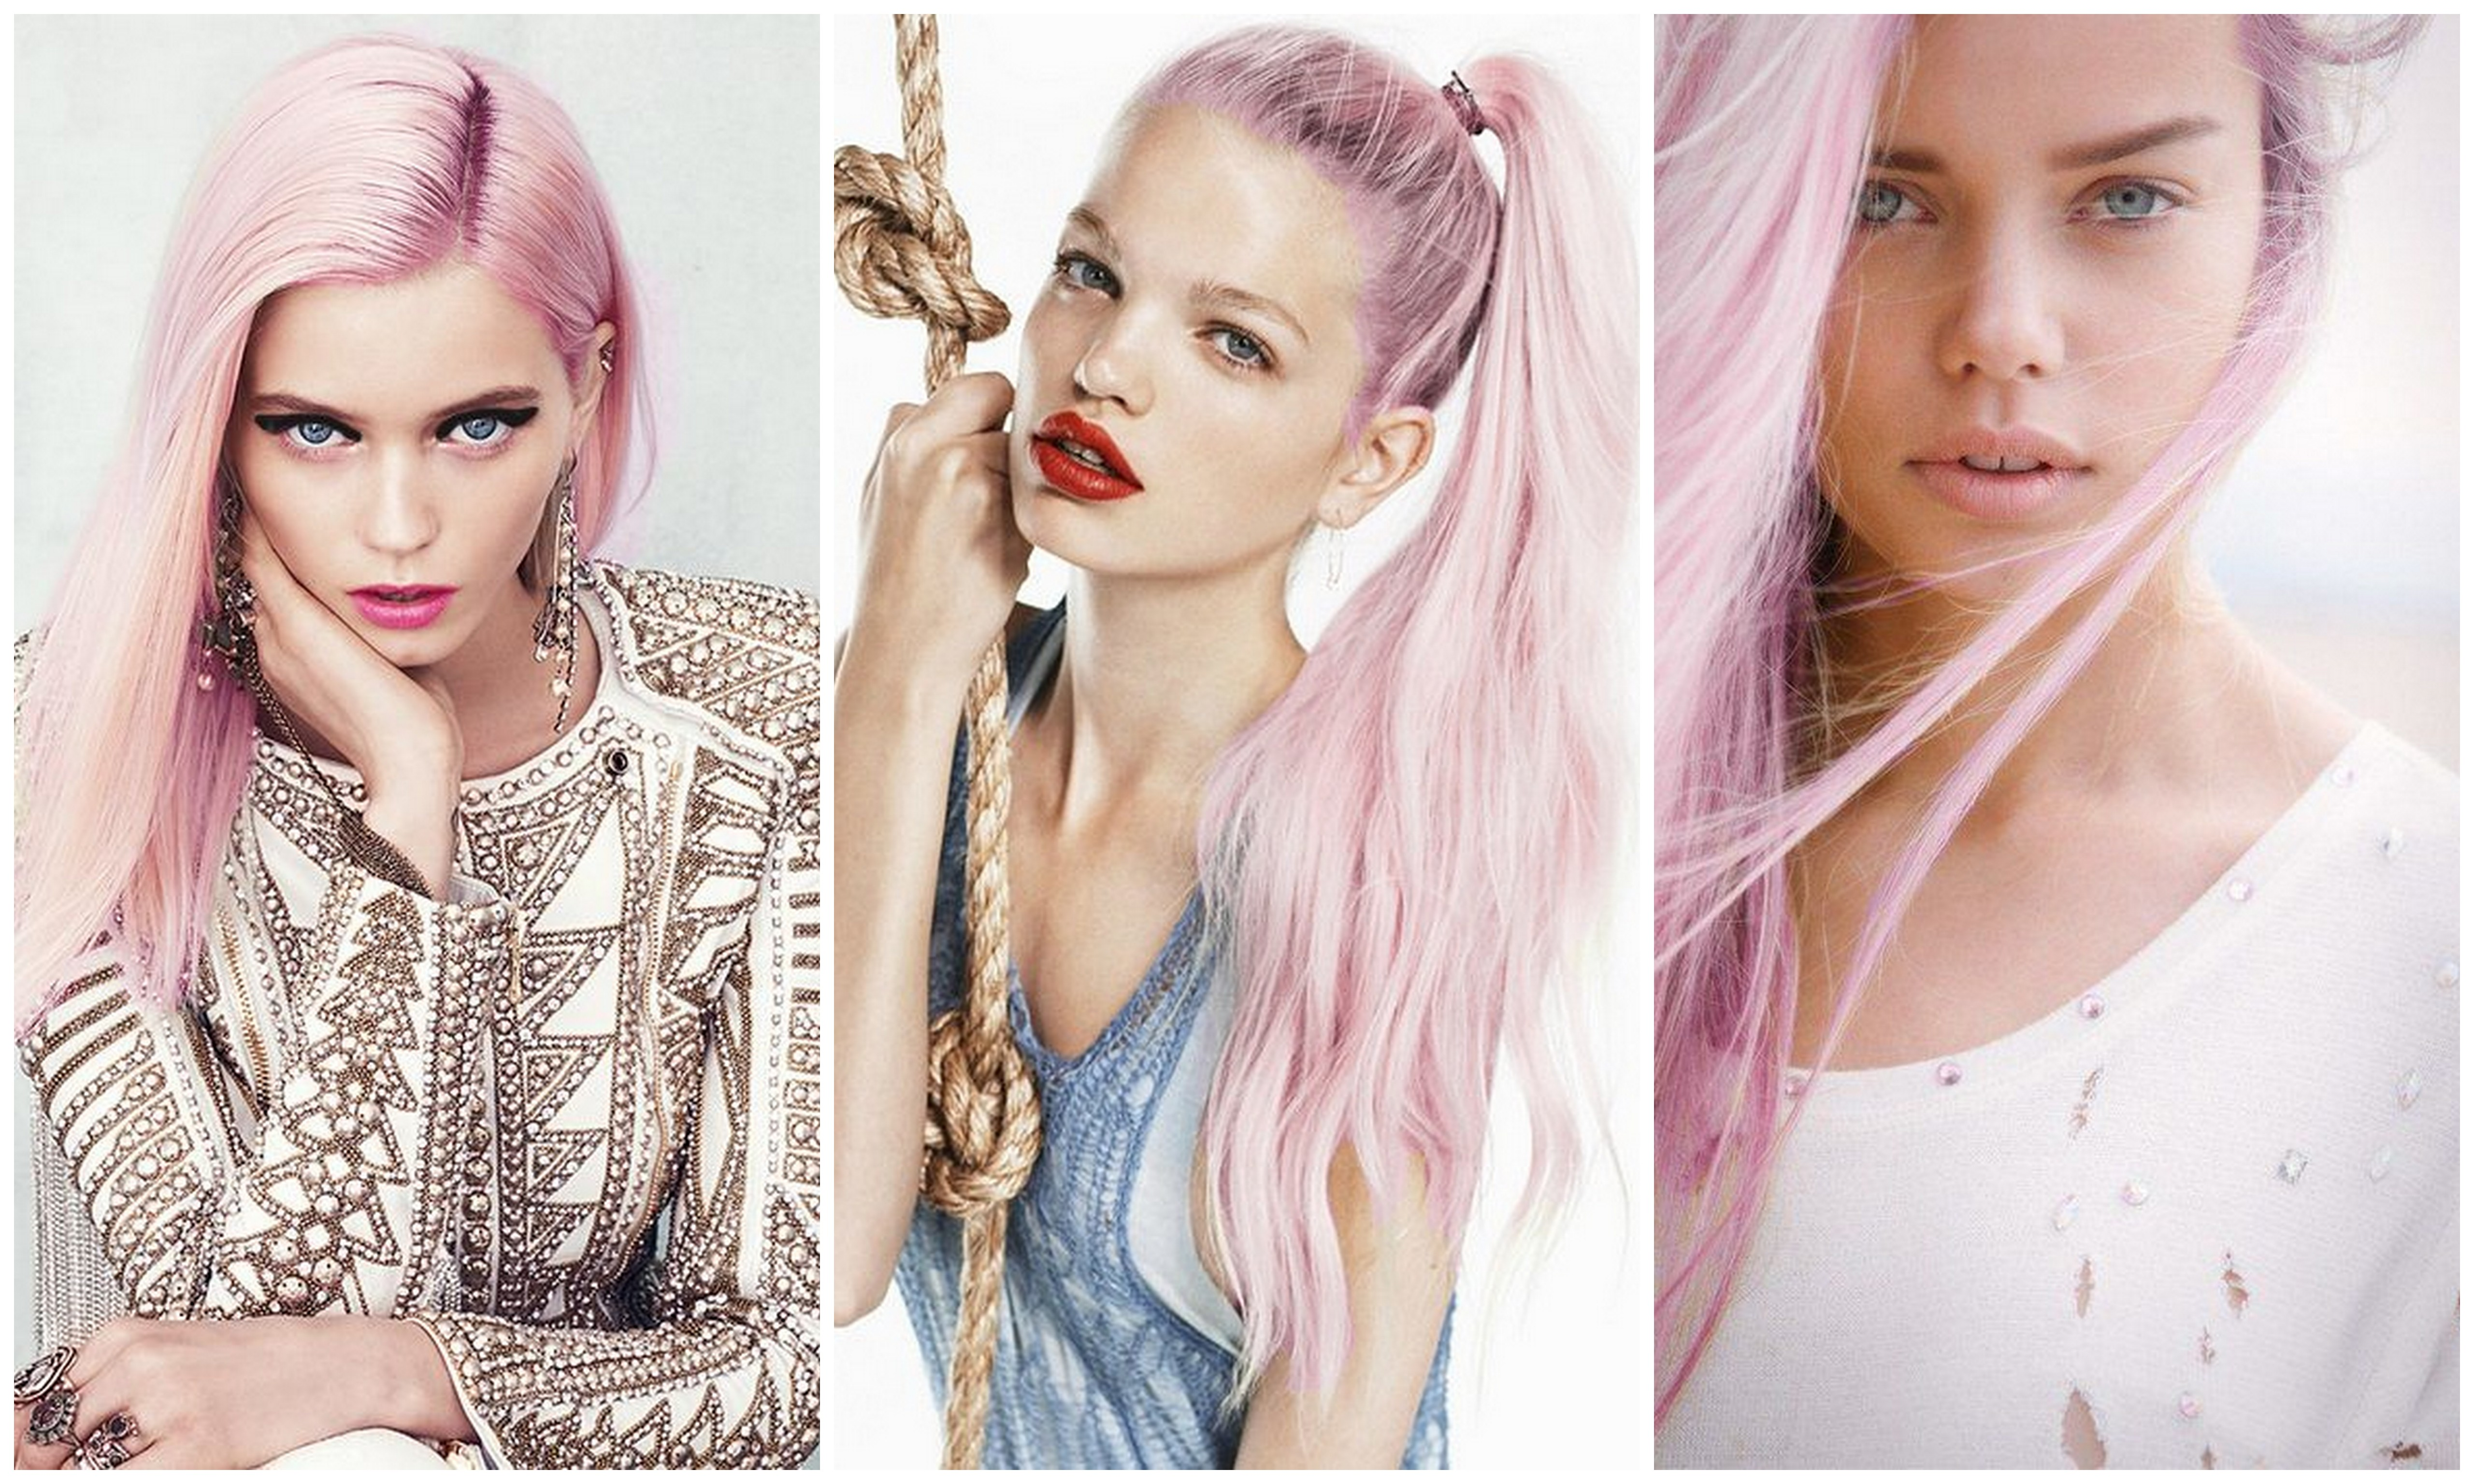 Pasteltinten Haar Obsessed With Pastel Pink Hair La Viesagista